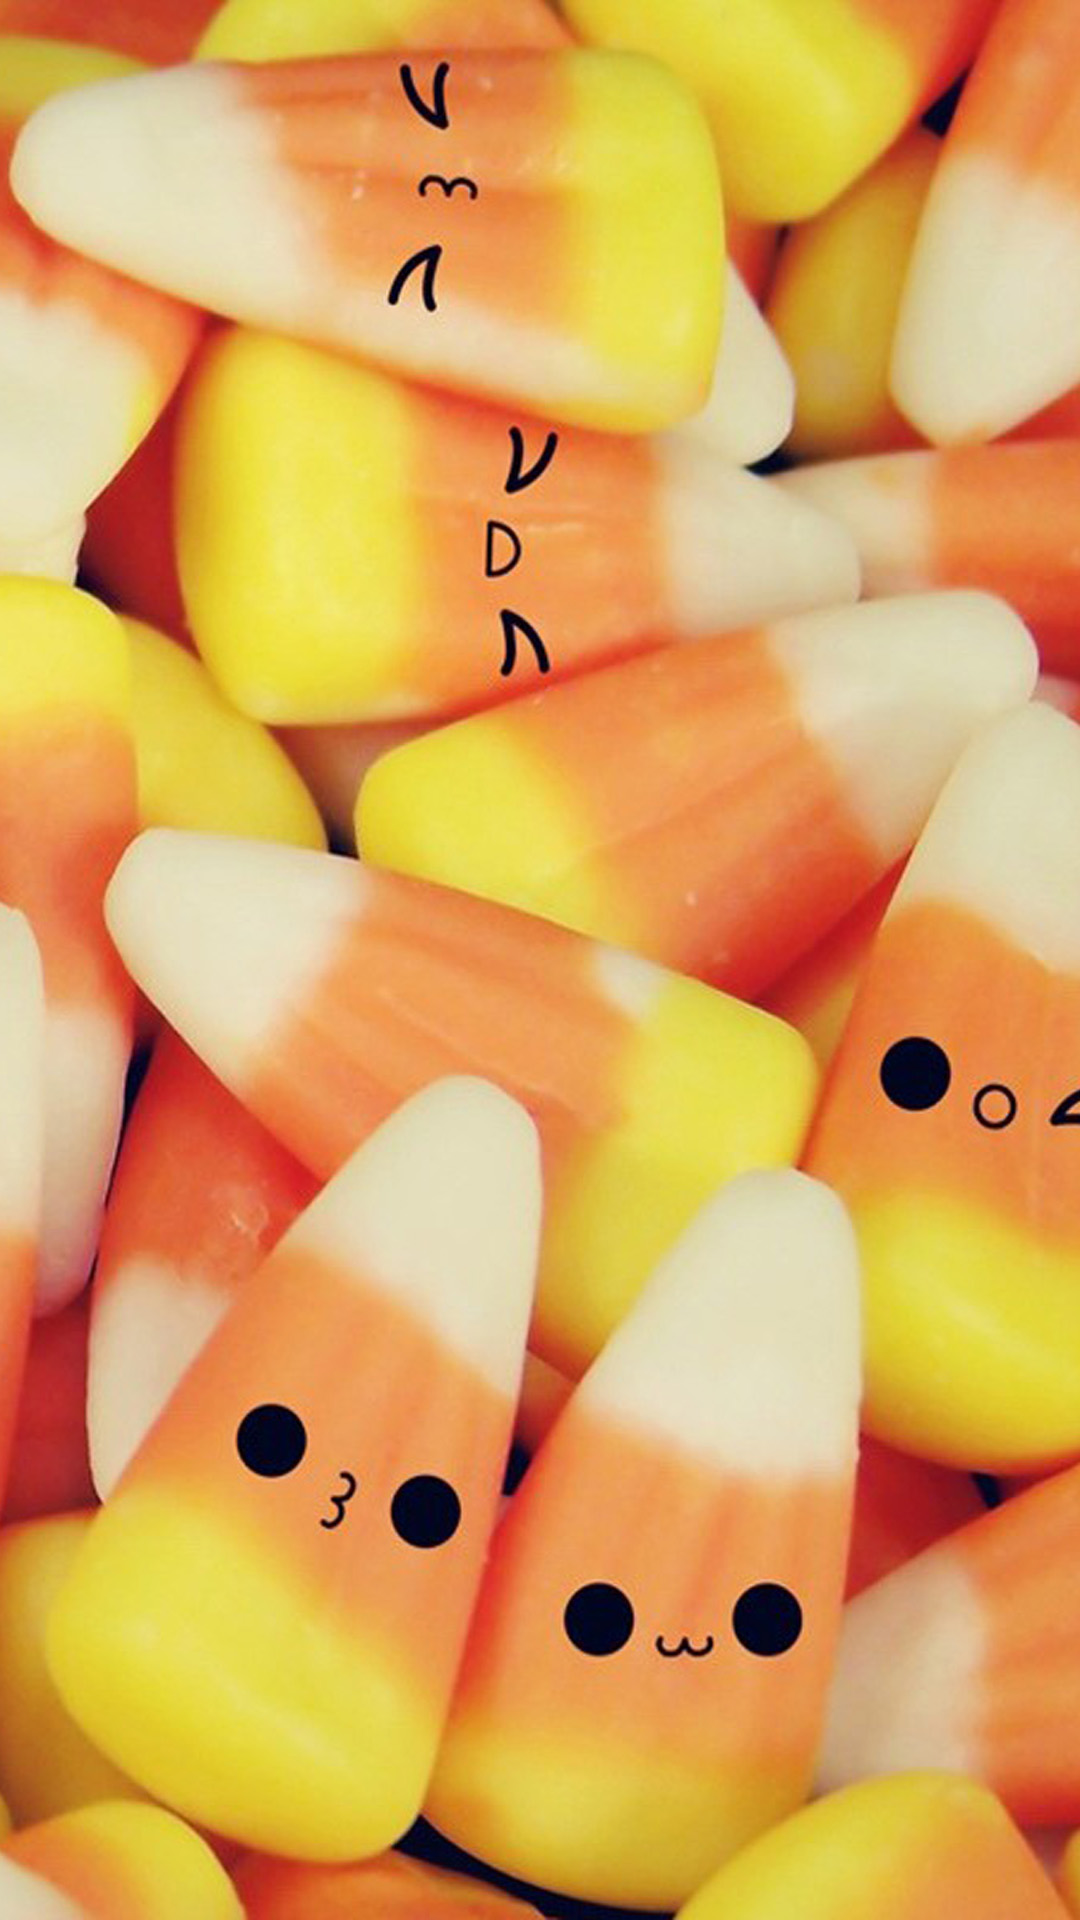 Cute Candy iphone 6 plus Wallpaper iPhone 6 Plus Wallpapers HD 1080x1920